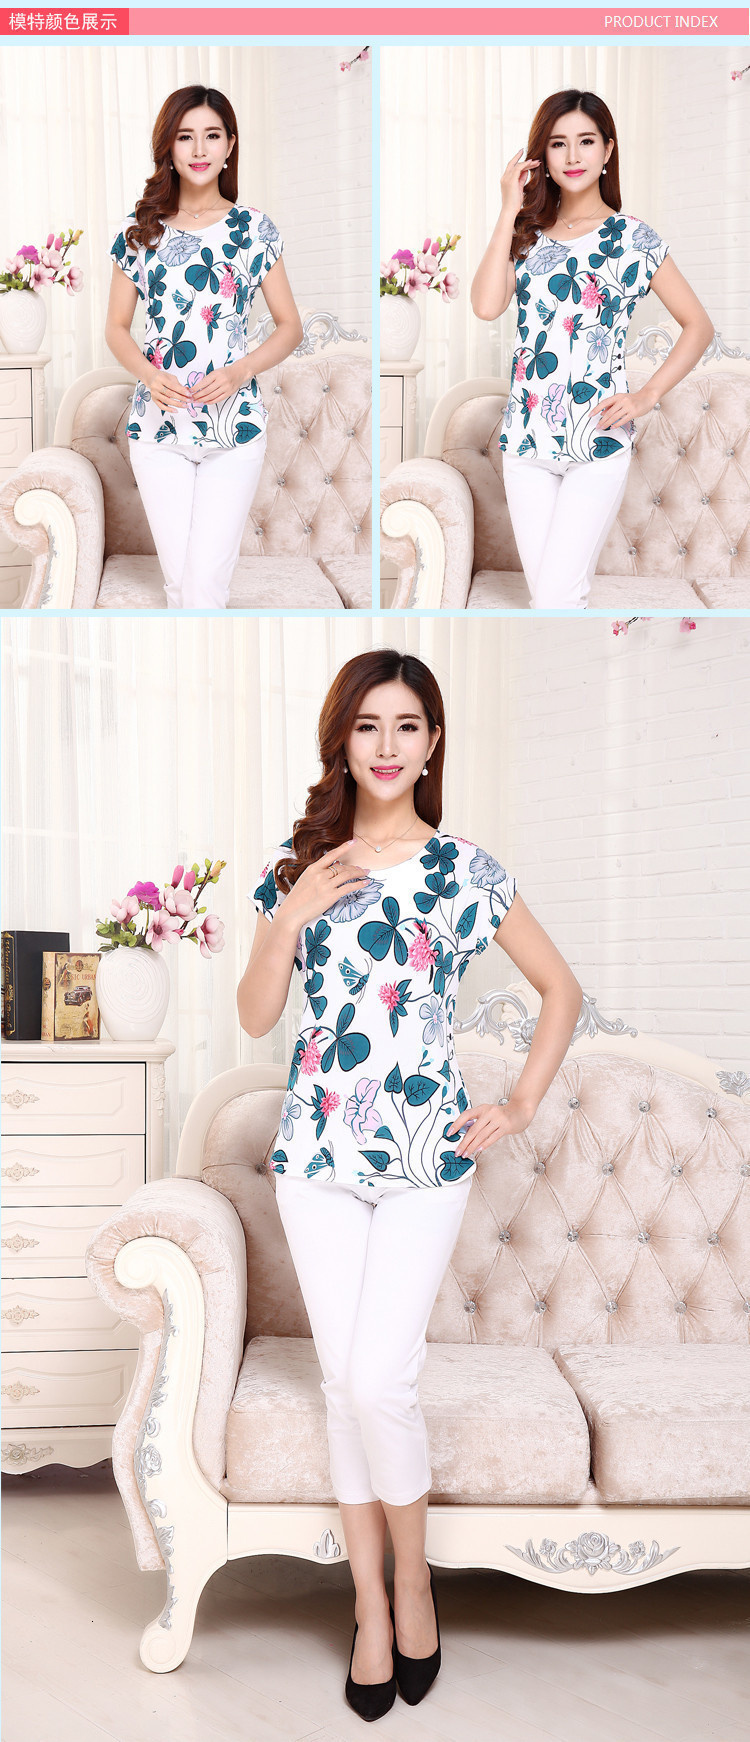 Hbbe4b743e5a24e9d96c2e2464a69767a9 - 5XL Women Ladies Clothing Tops short Sleeve printing Shirts Casual Boat anchor Blouse Silk female woman clothes plus size